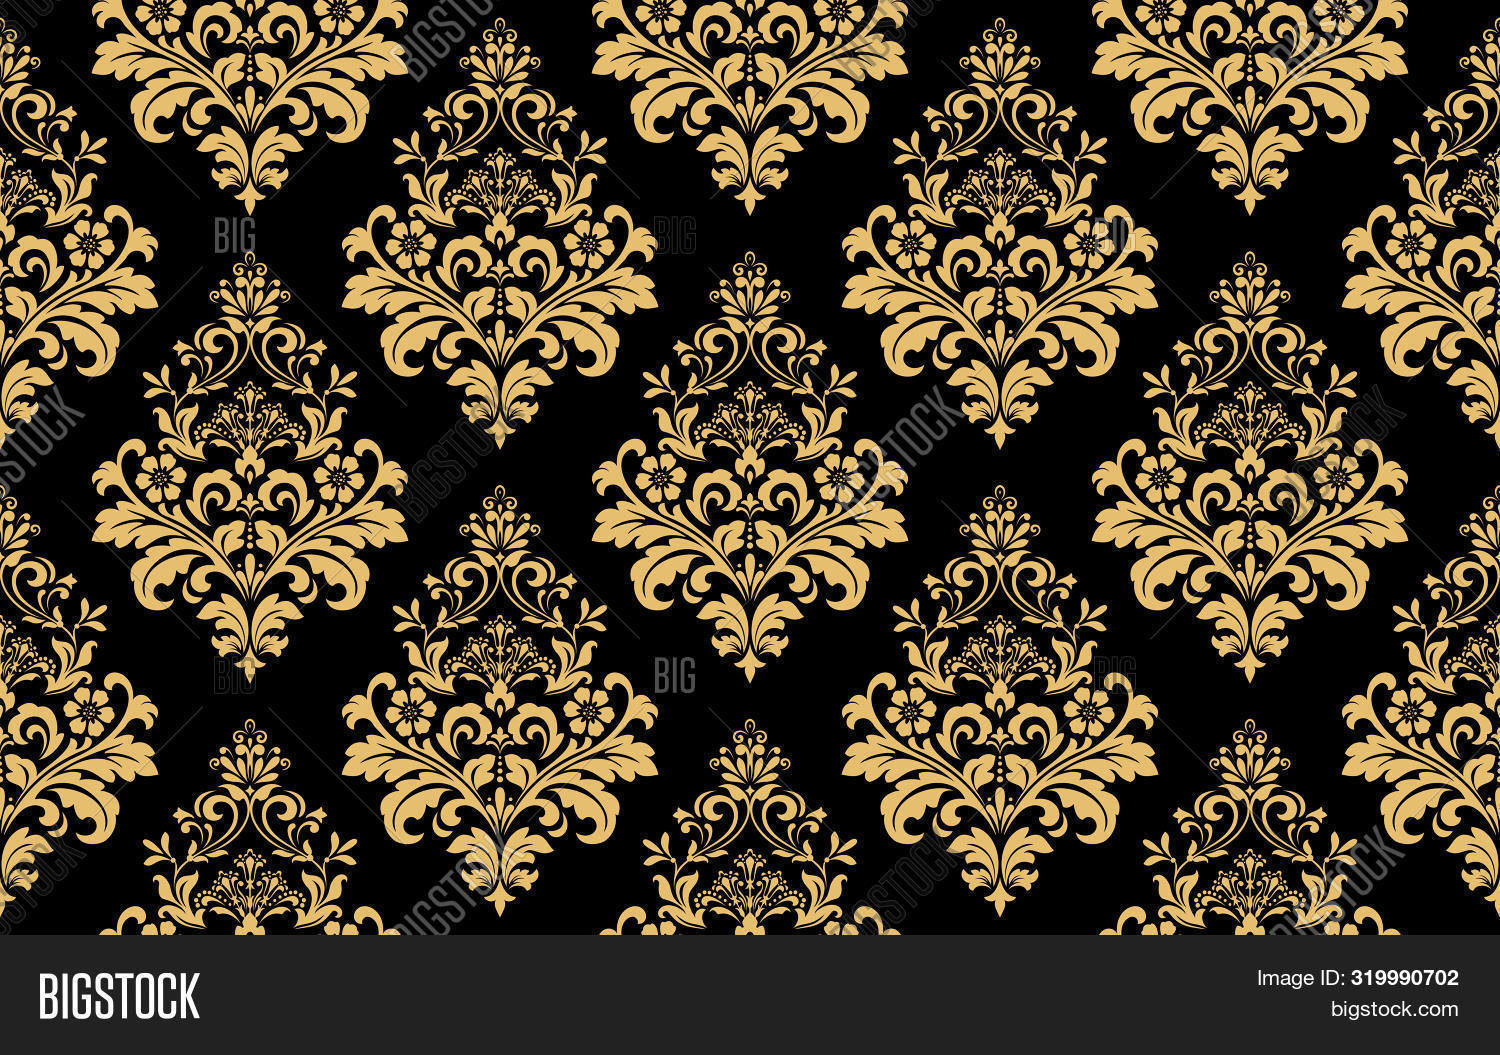 Floral Pattern Image Photo Free Trial Bigstock